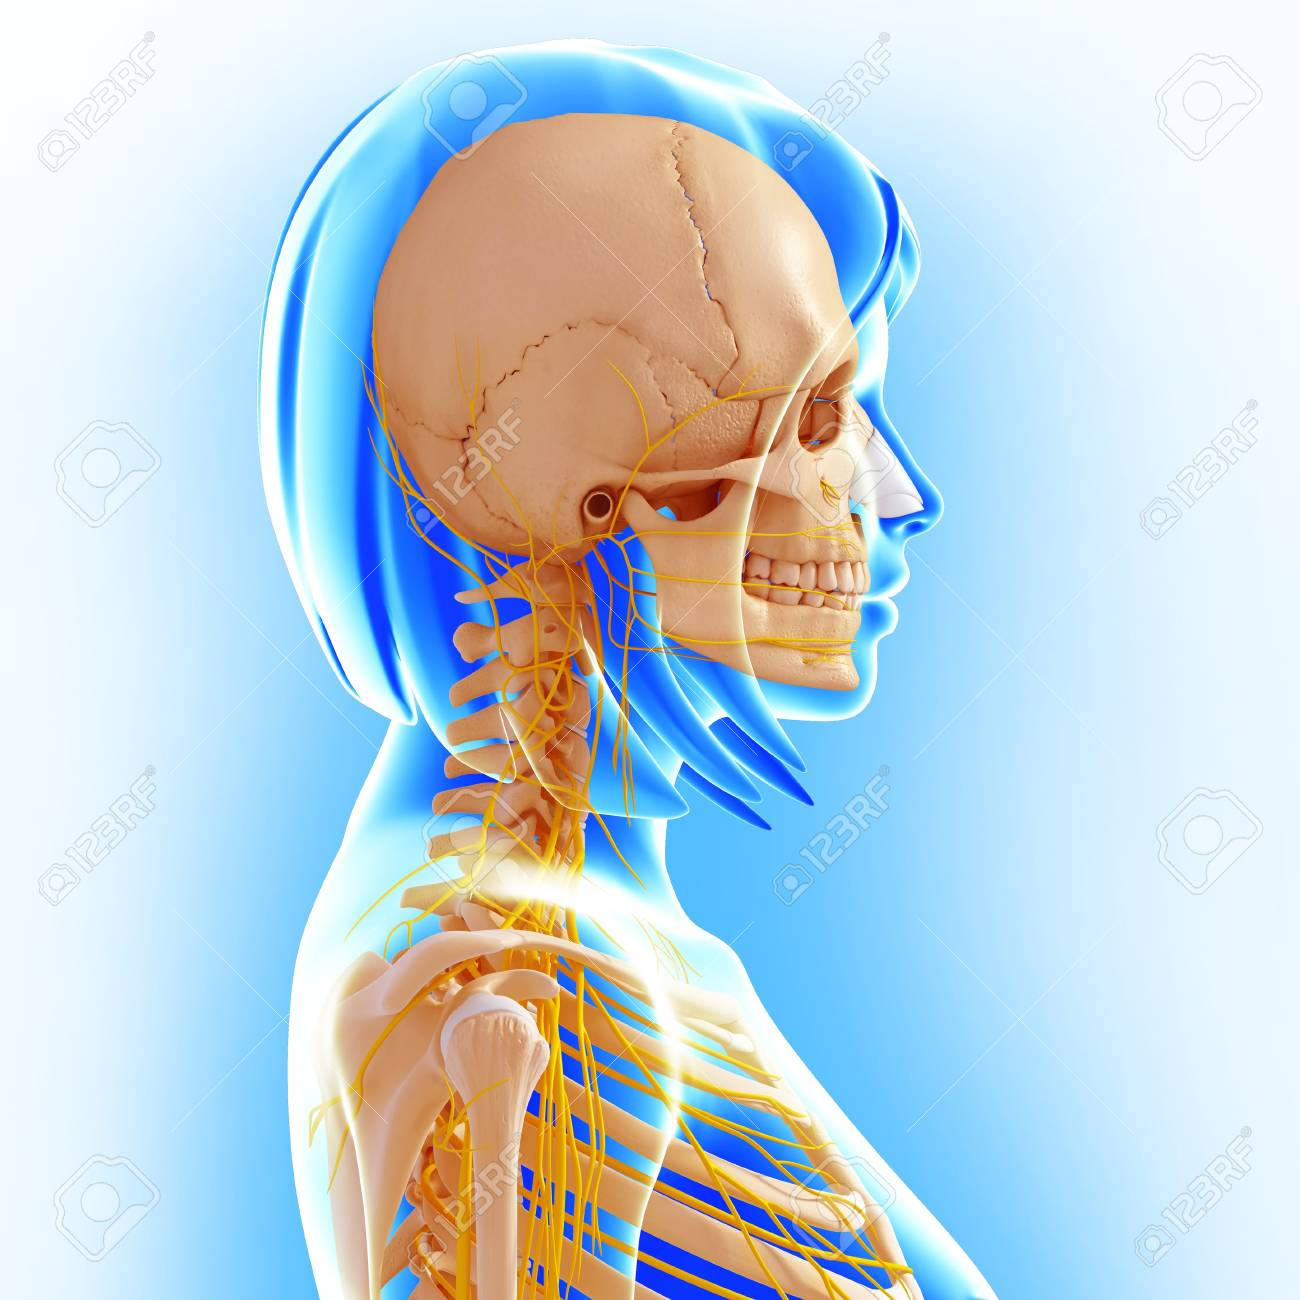 Upper Body Anatomyartwork Stock Photo Picture And Royalty Free